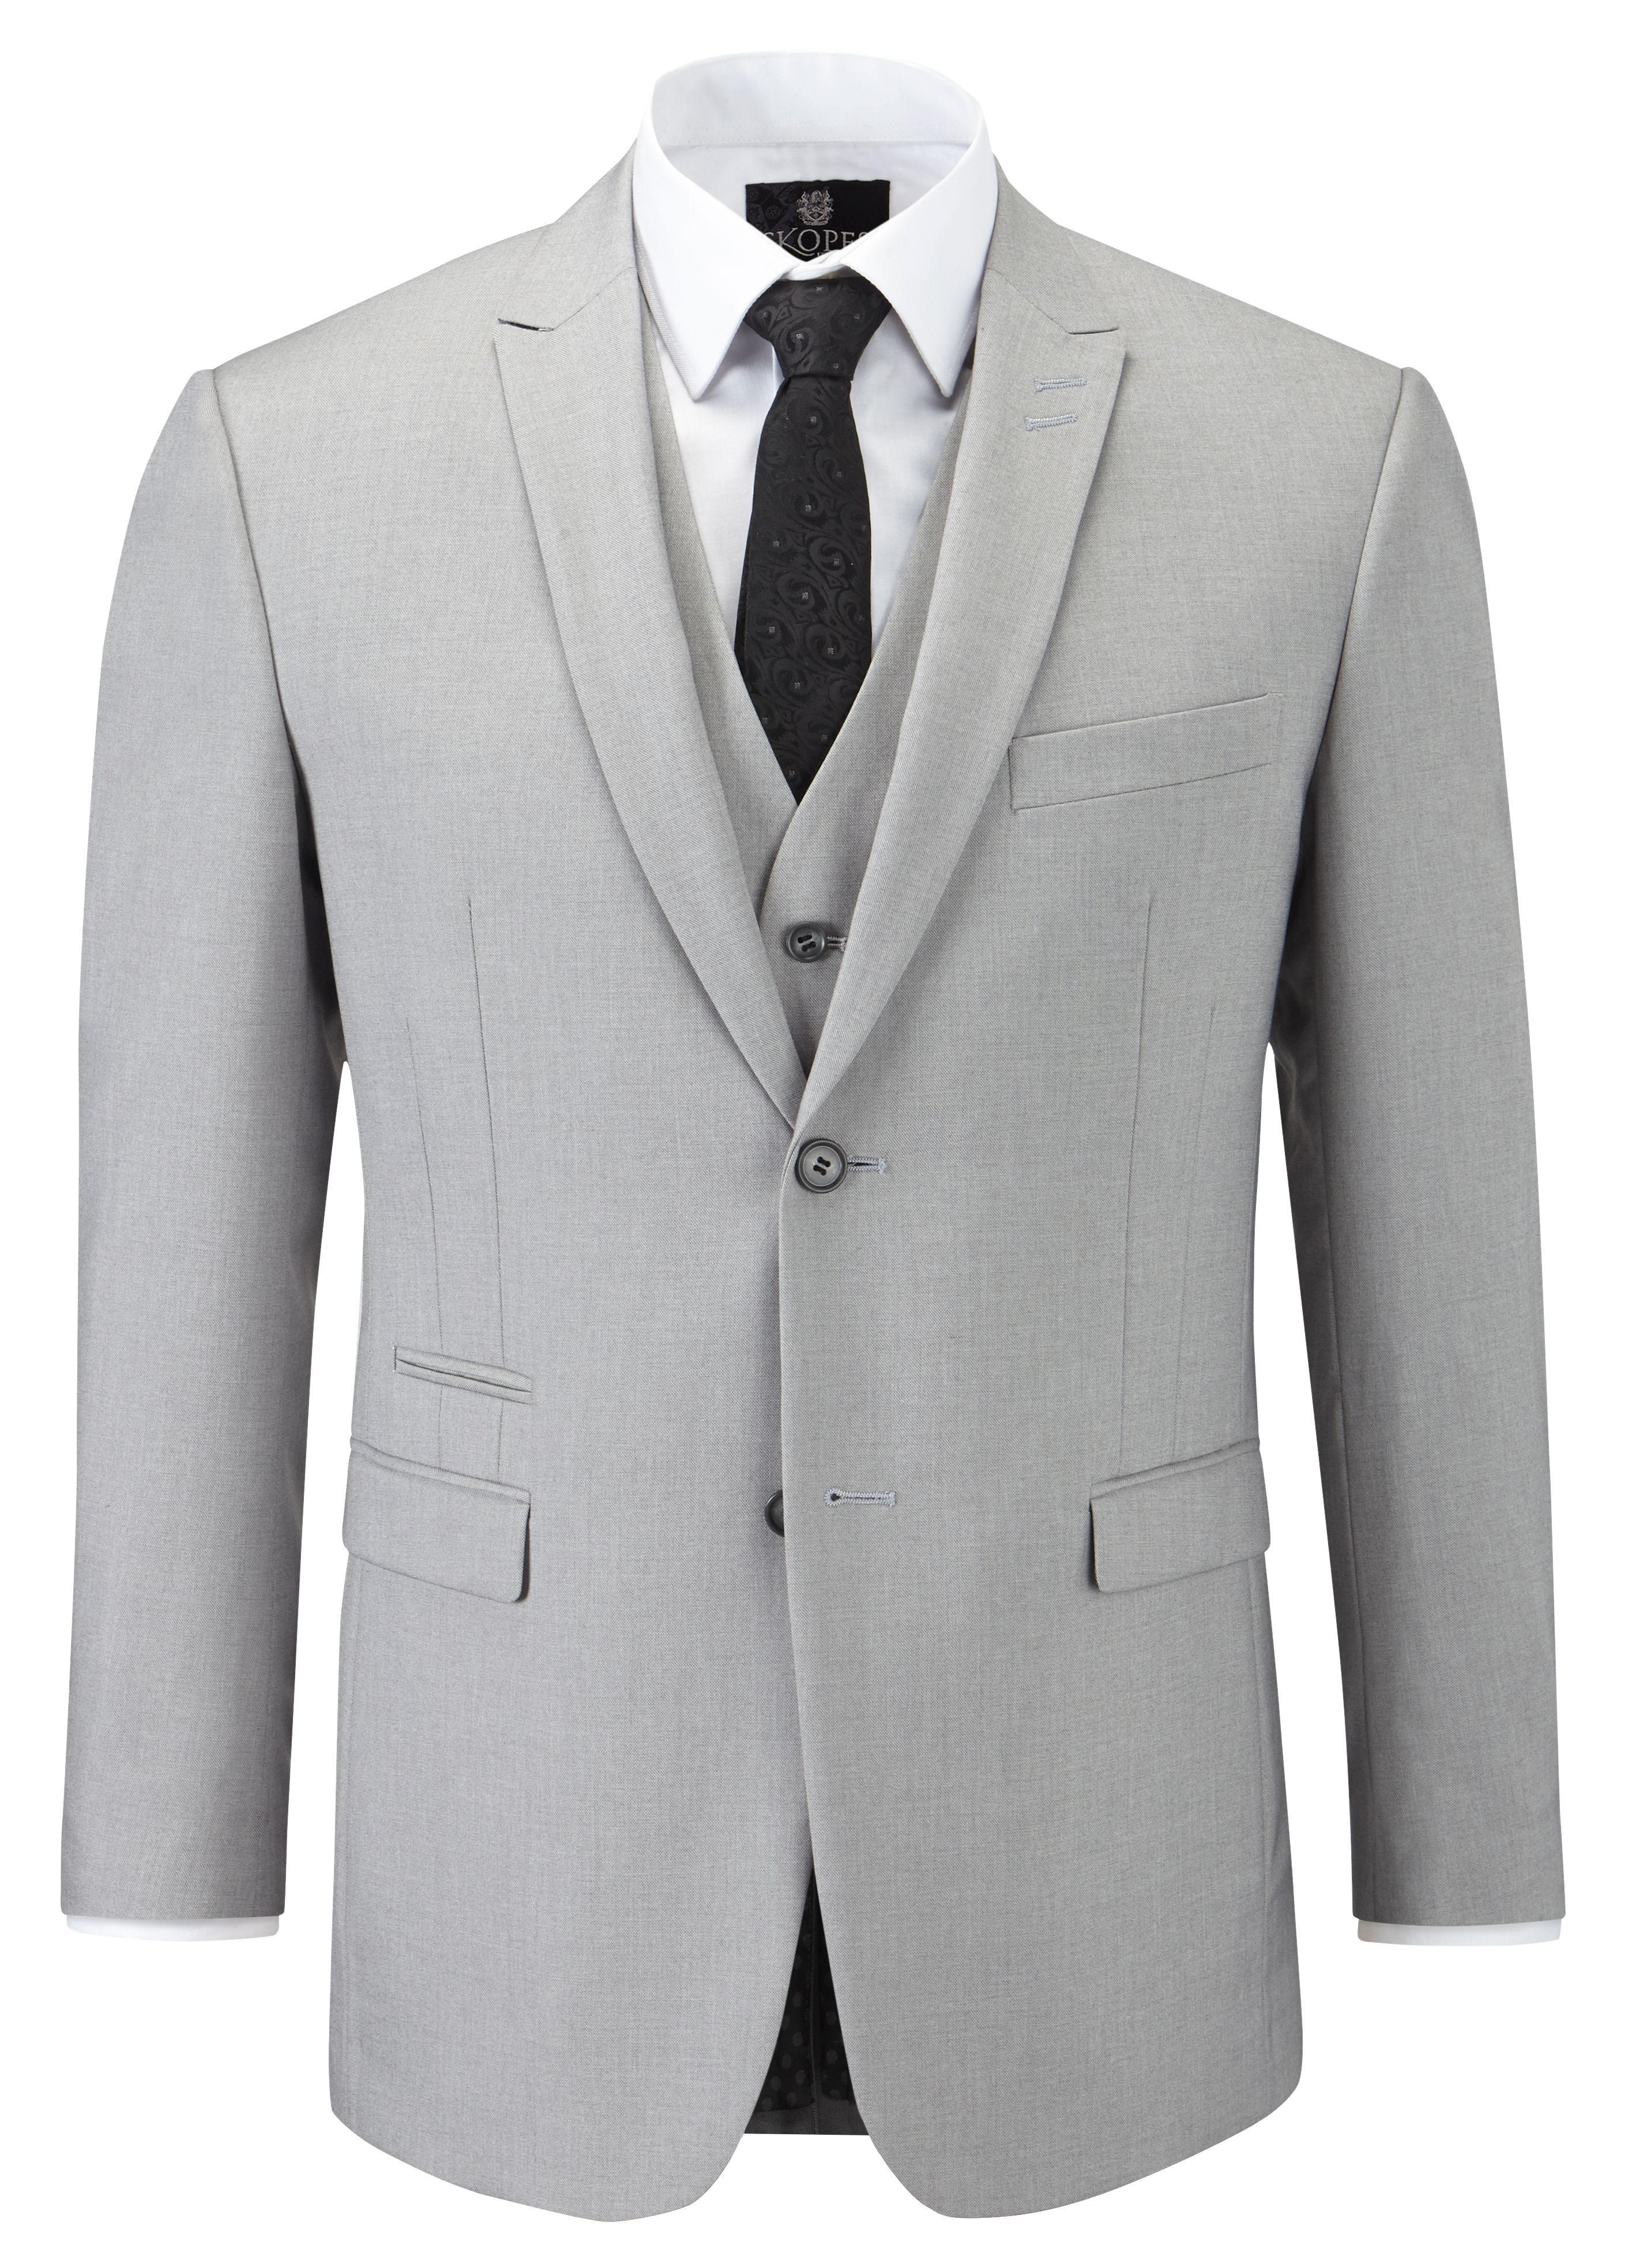 Sharpe single breasted suit jacket